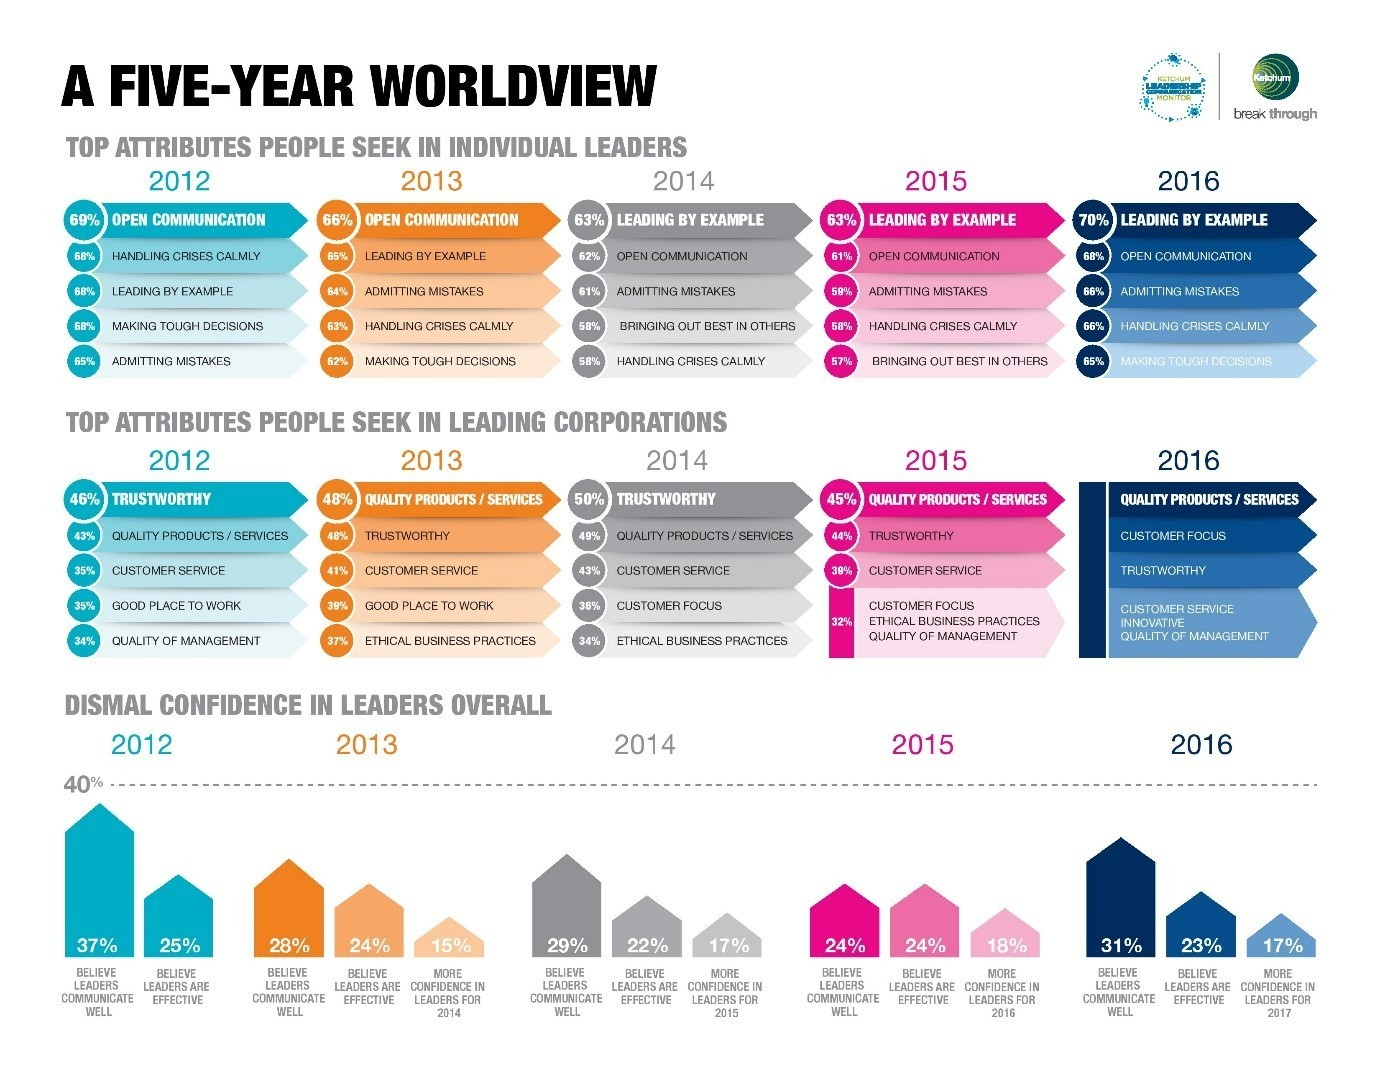 A five-year global view on leadership